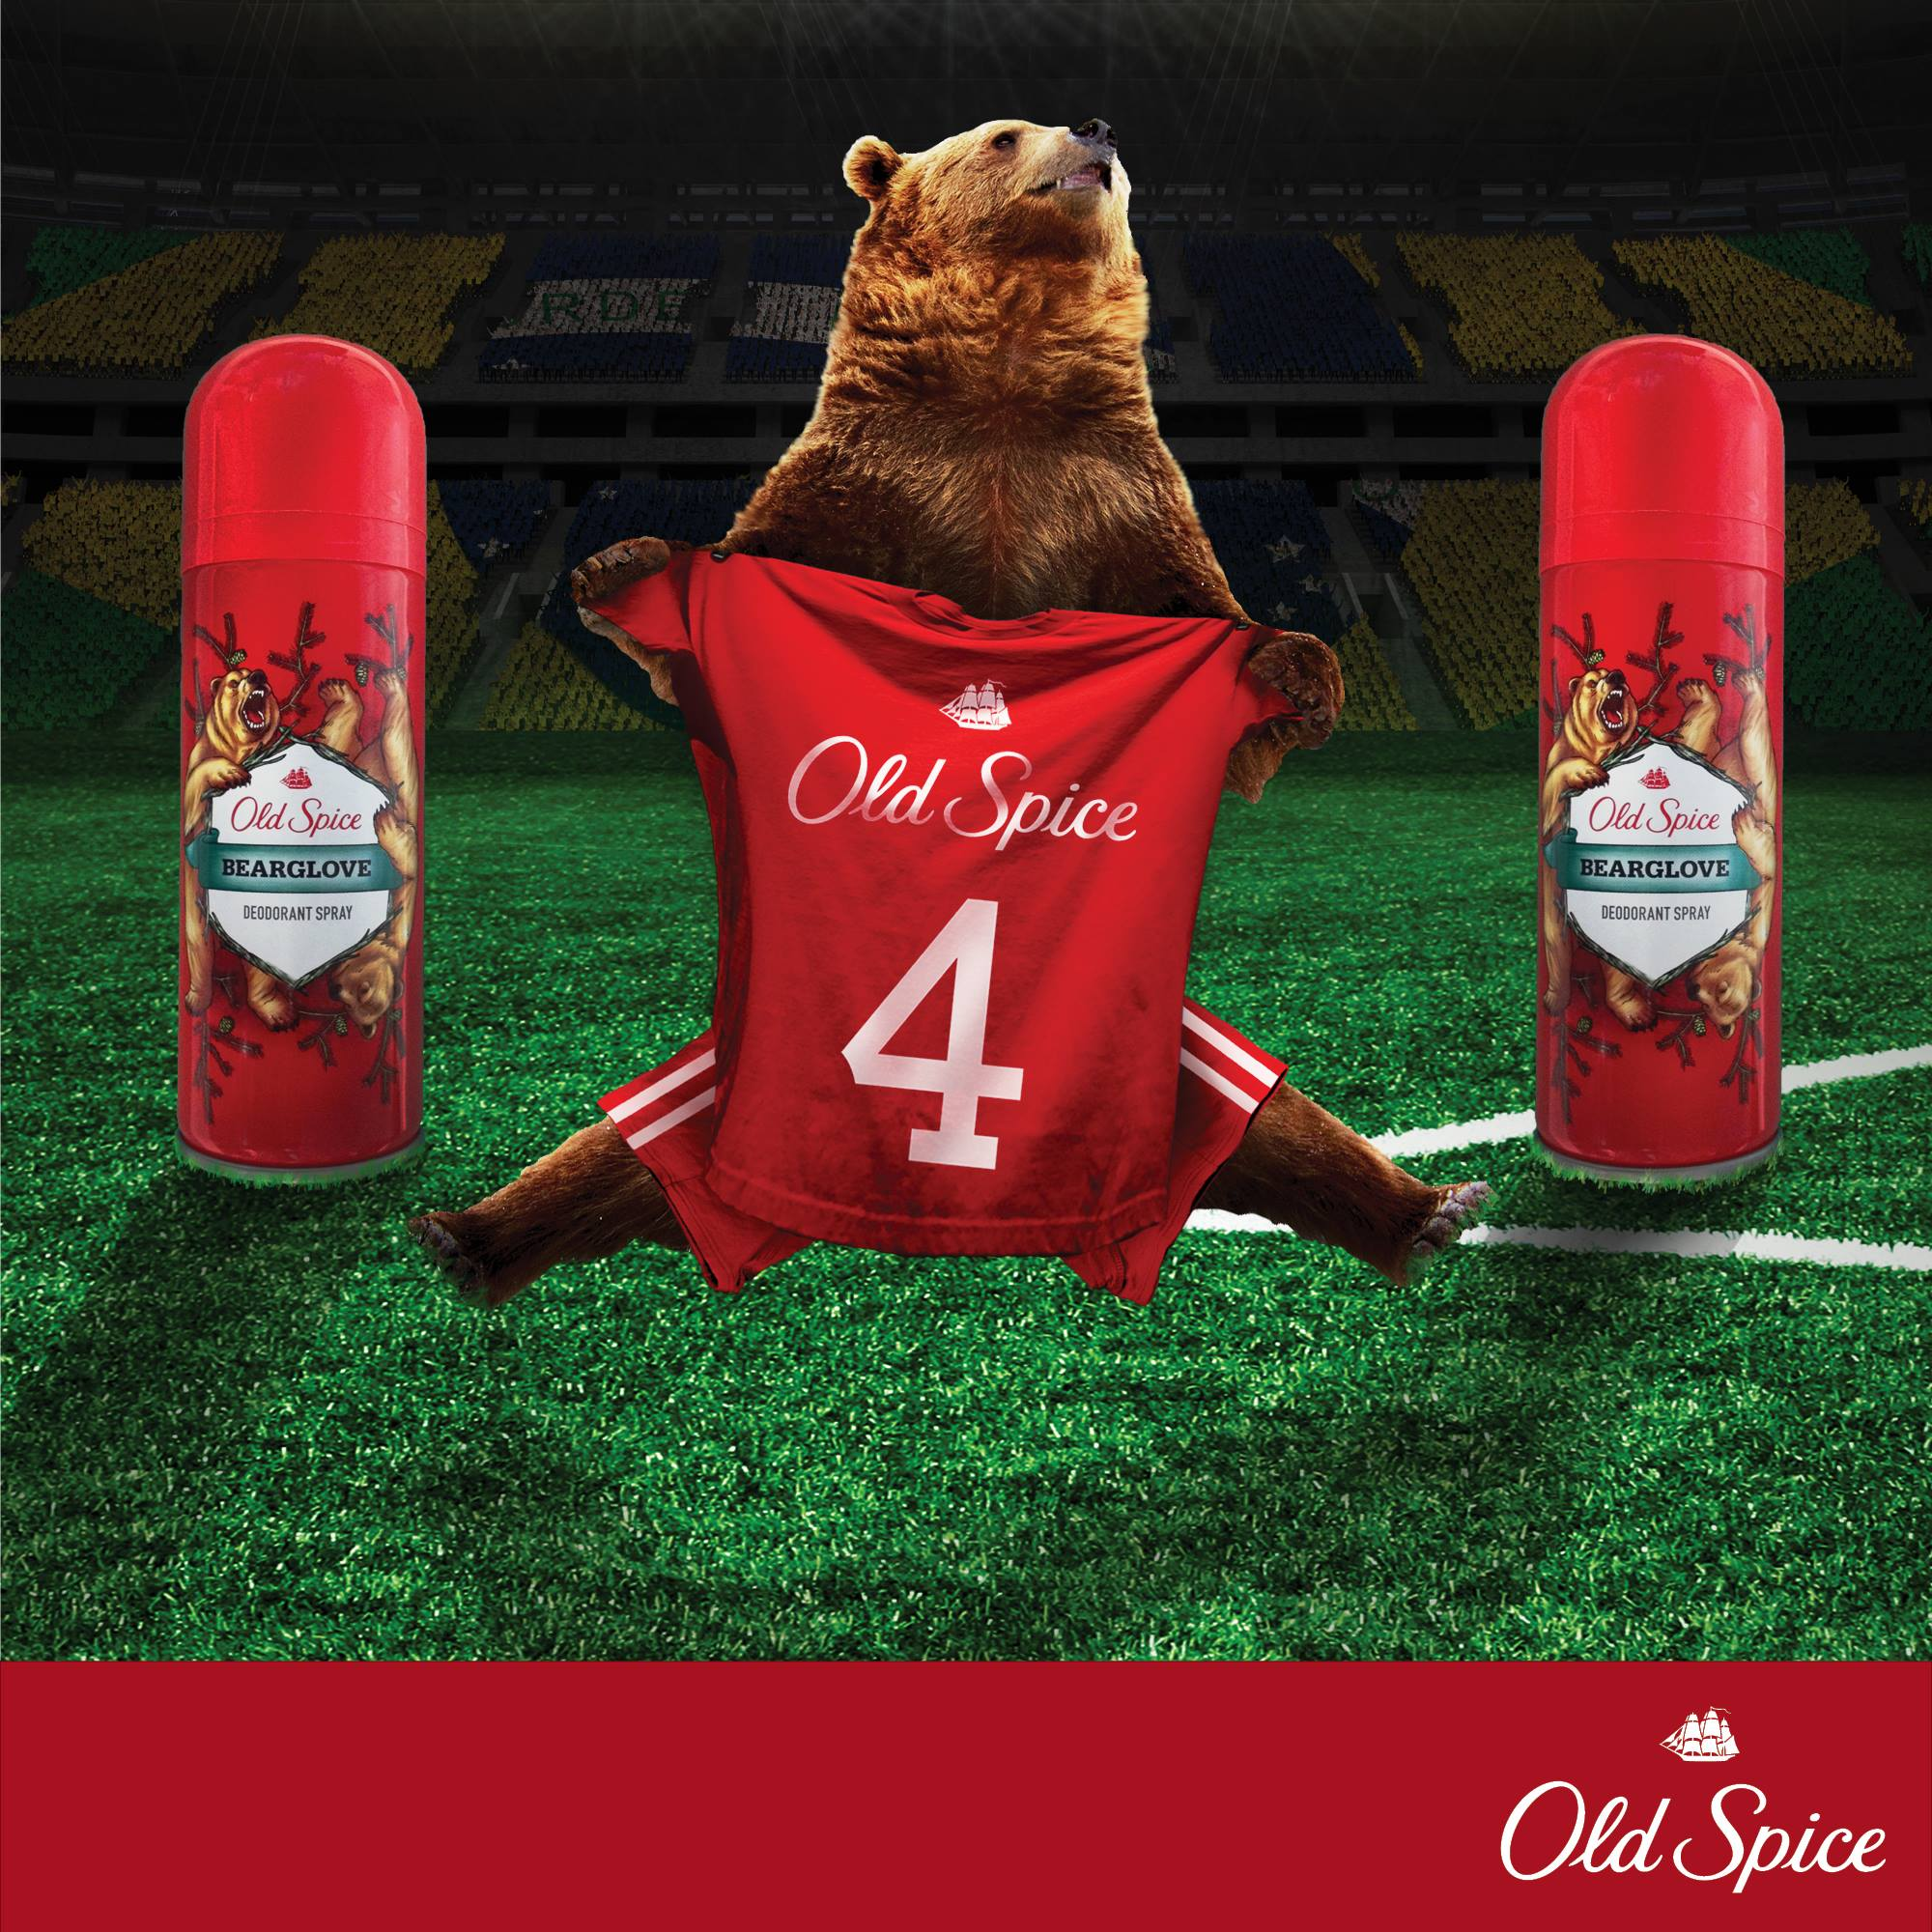 Gorilla social media marketing campaign poster of a bear doing a jumping jack, holding an Old Spice football shirt on a football pitch